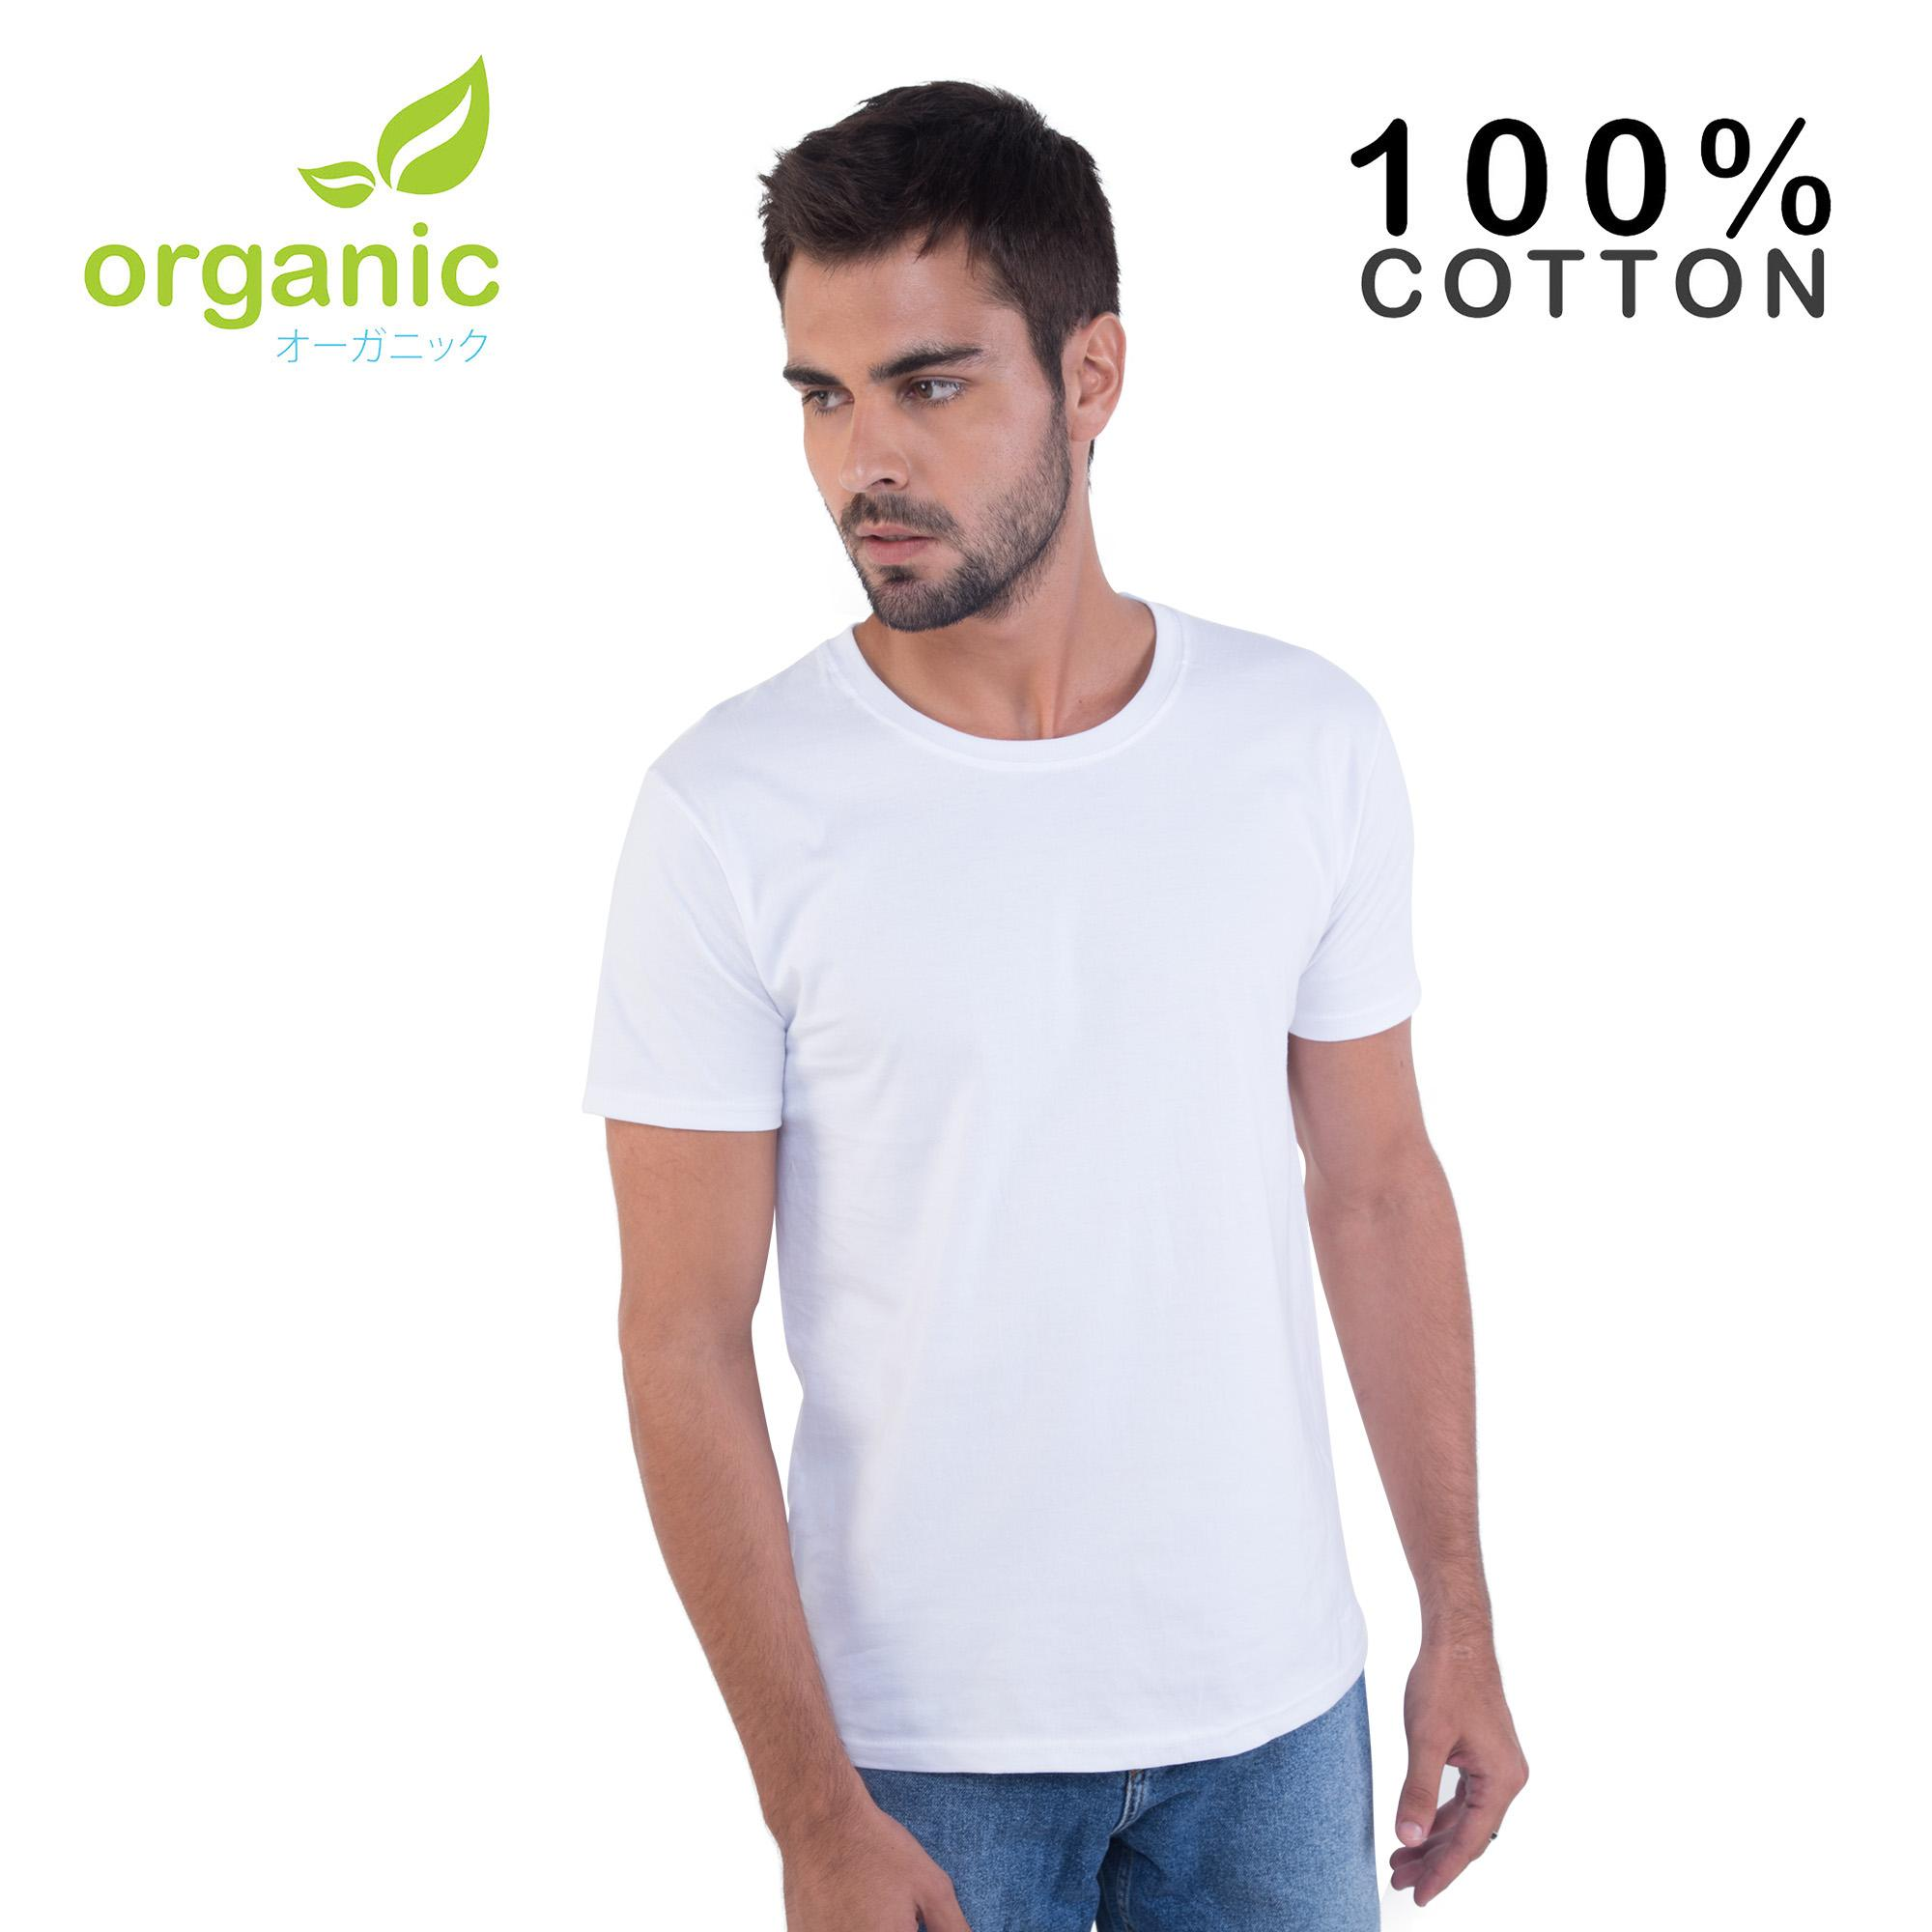 f0049ba81d9acc Organic Mens 100% Cotton Round neck Tees t shirt tshirt shirts tshirts tee  tops top